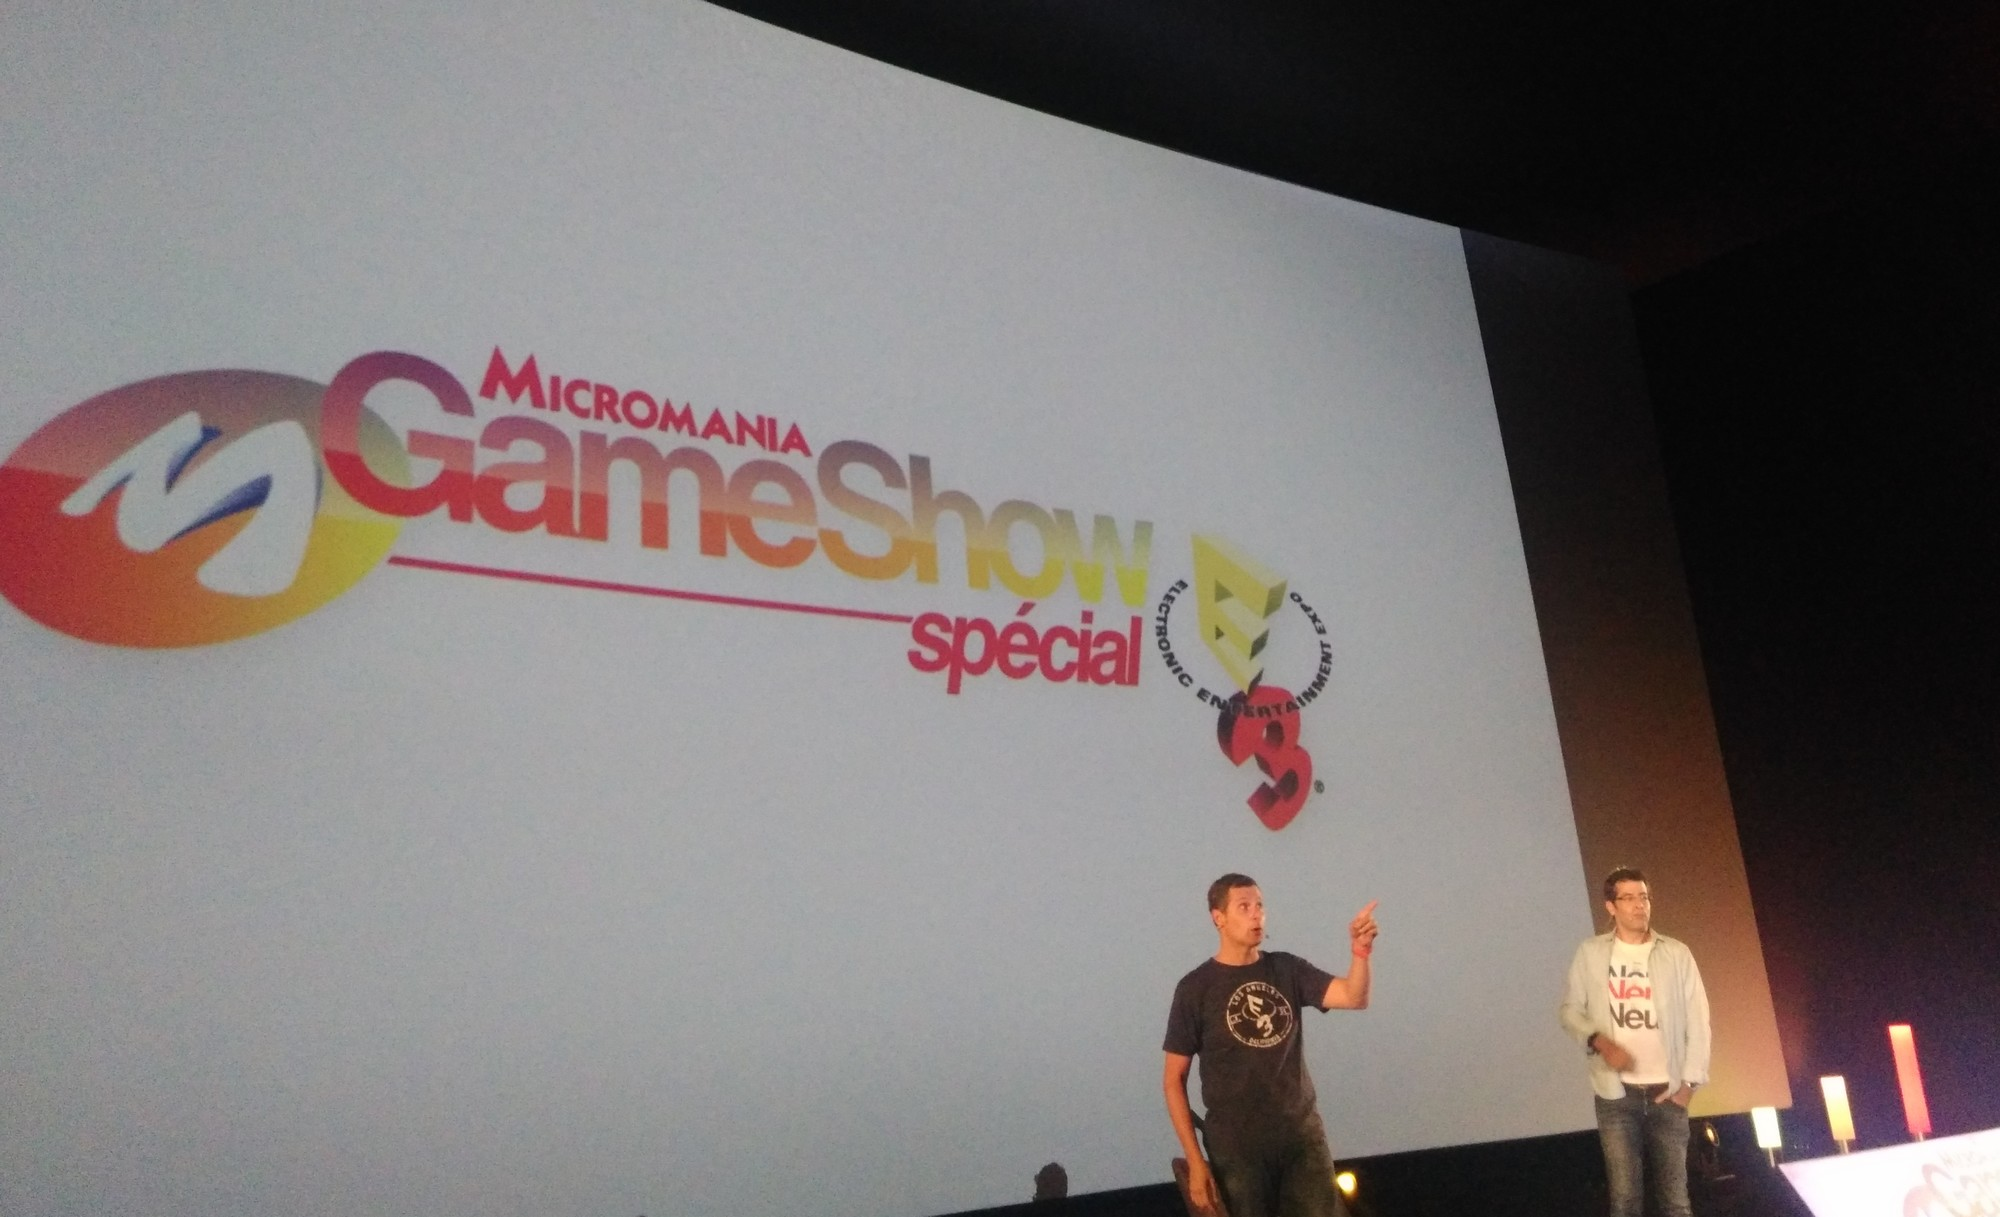 Micromania Game Show 2015